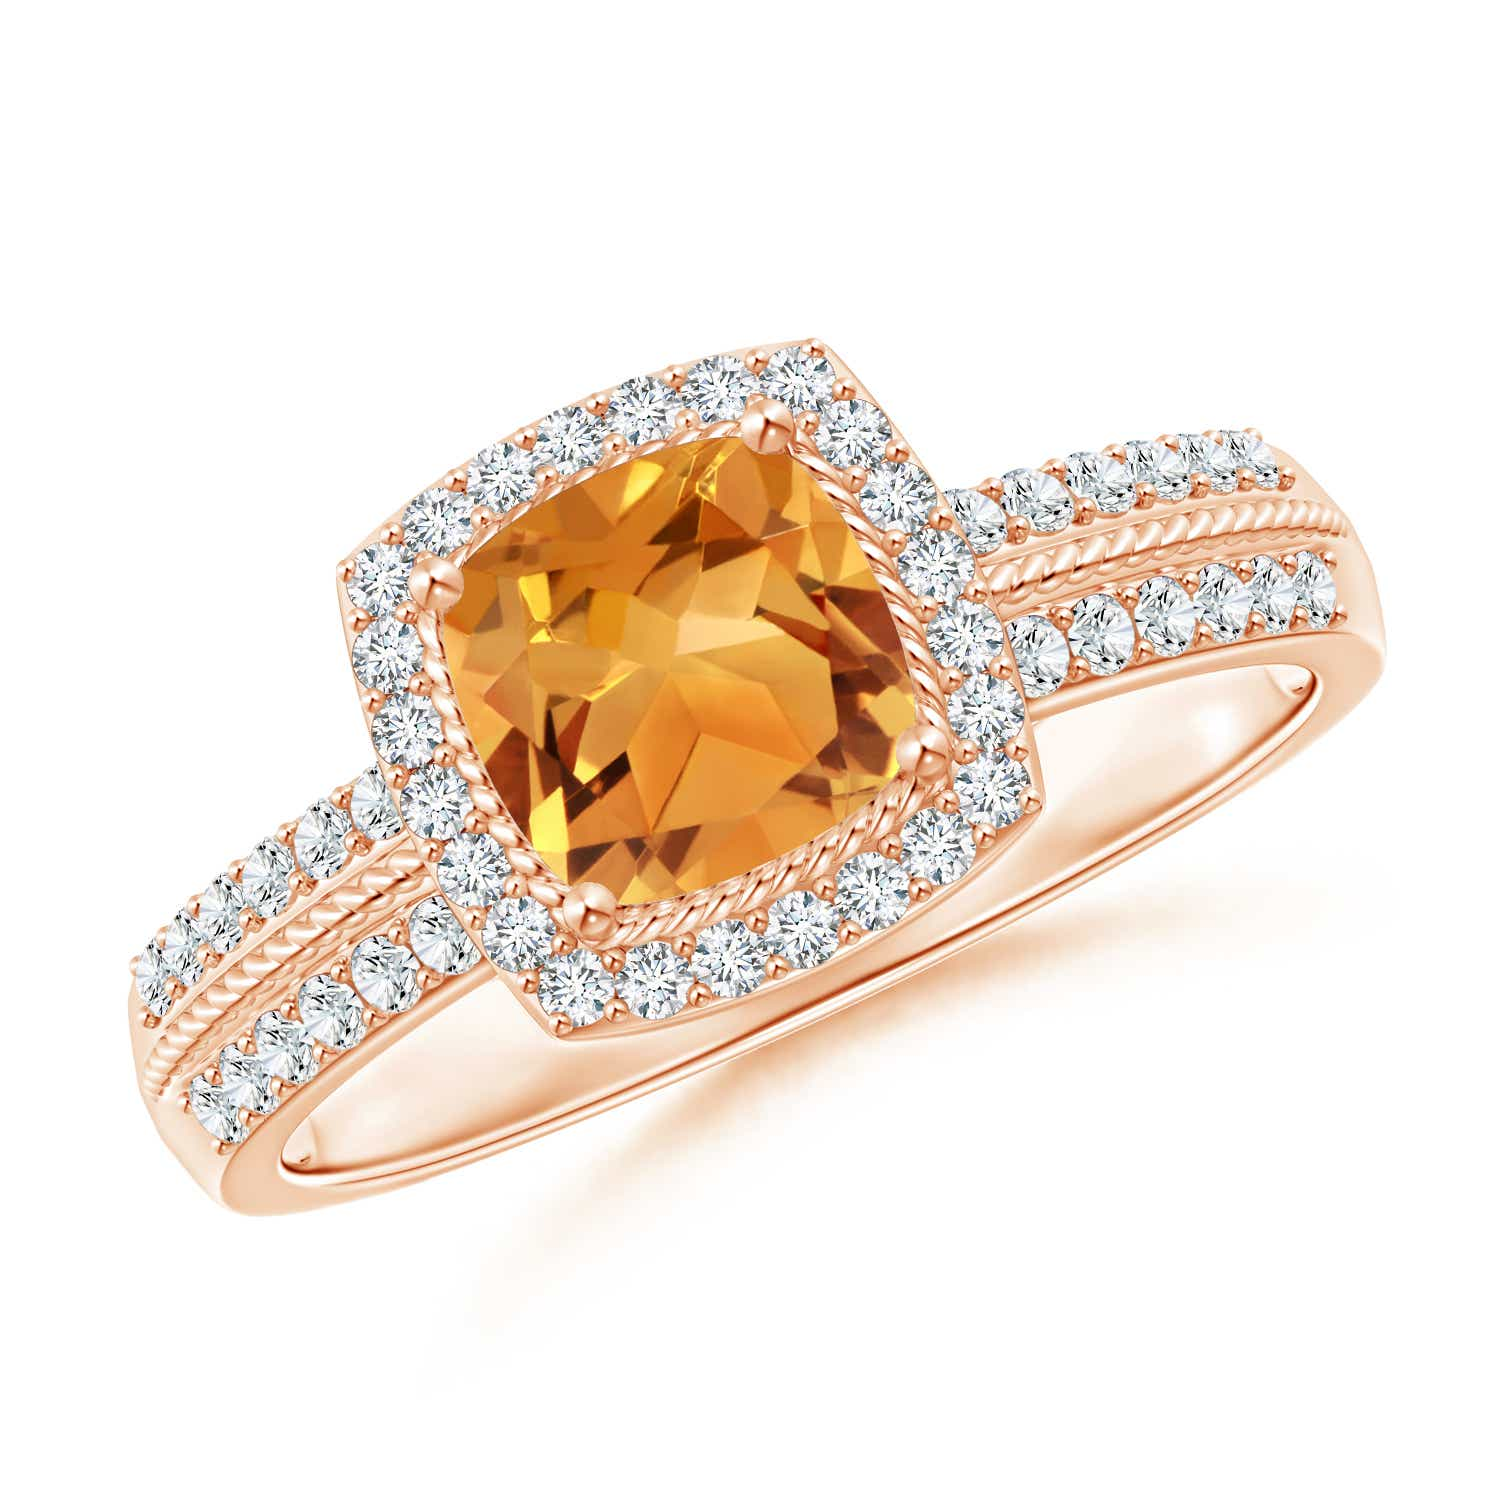 Angara Vintage Inspired Diamond Halo Cushion Citrine Ring in Platinum eSkE2layTR